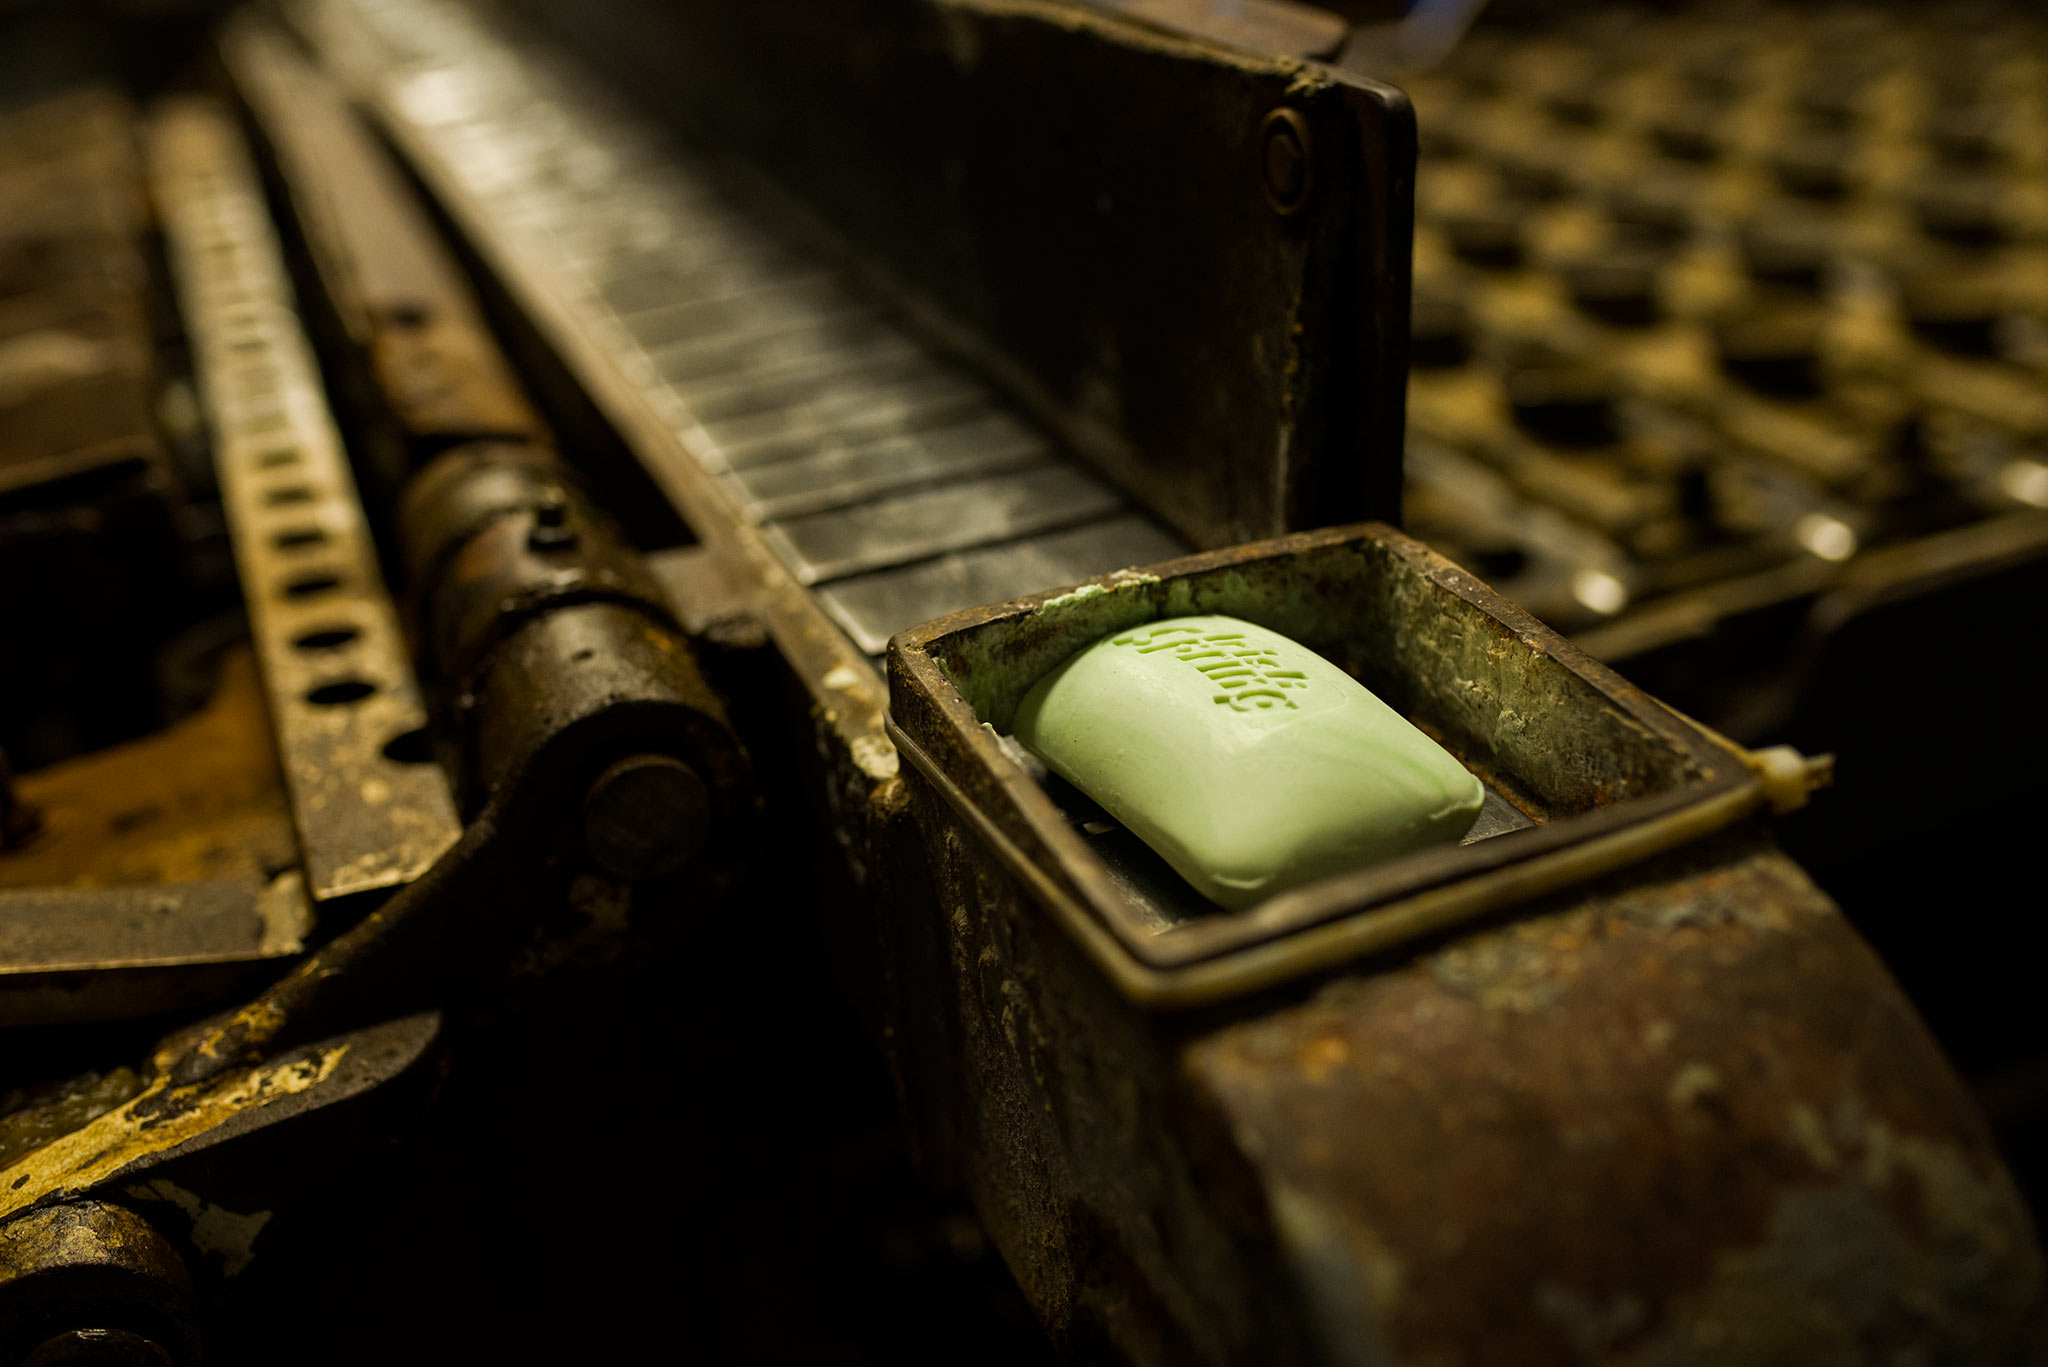 irish spring soap for cleaning soda bottles at averys soda new britain ct photography